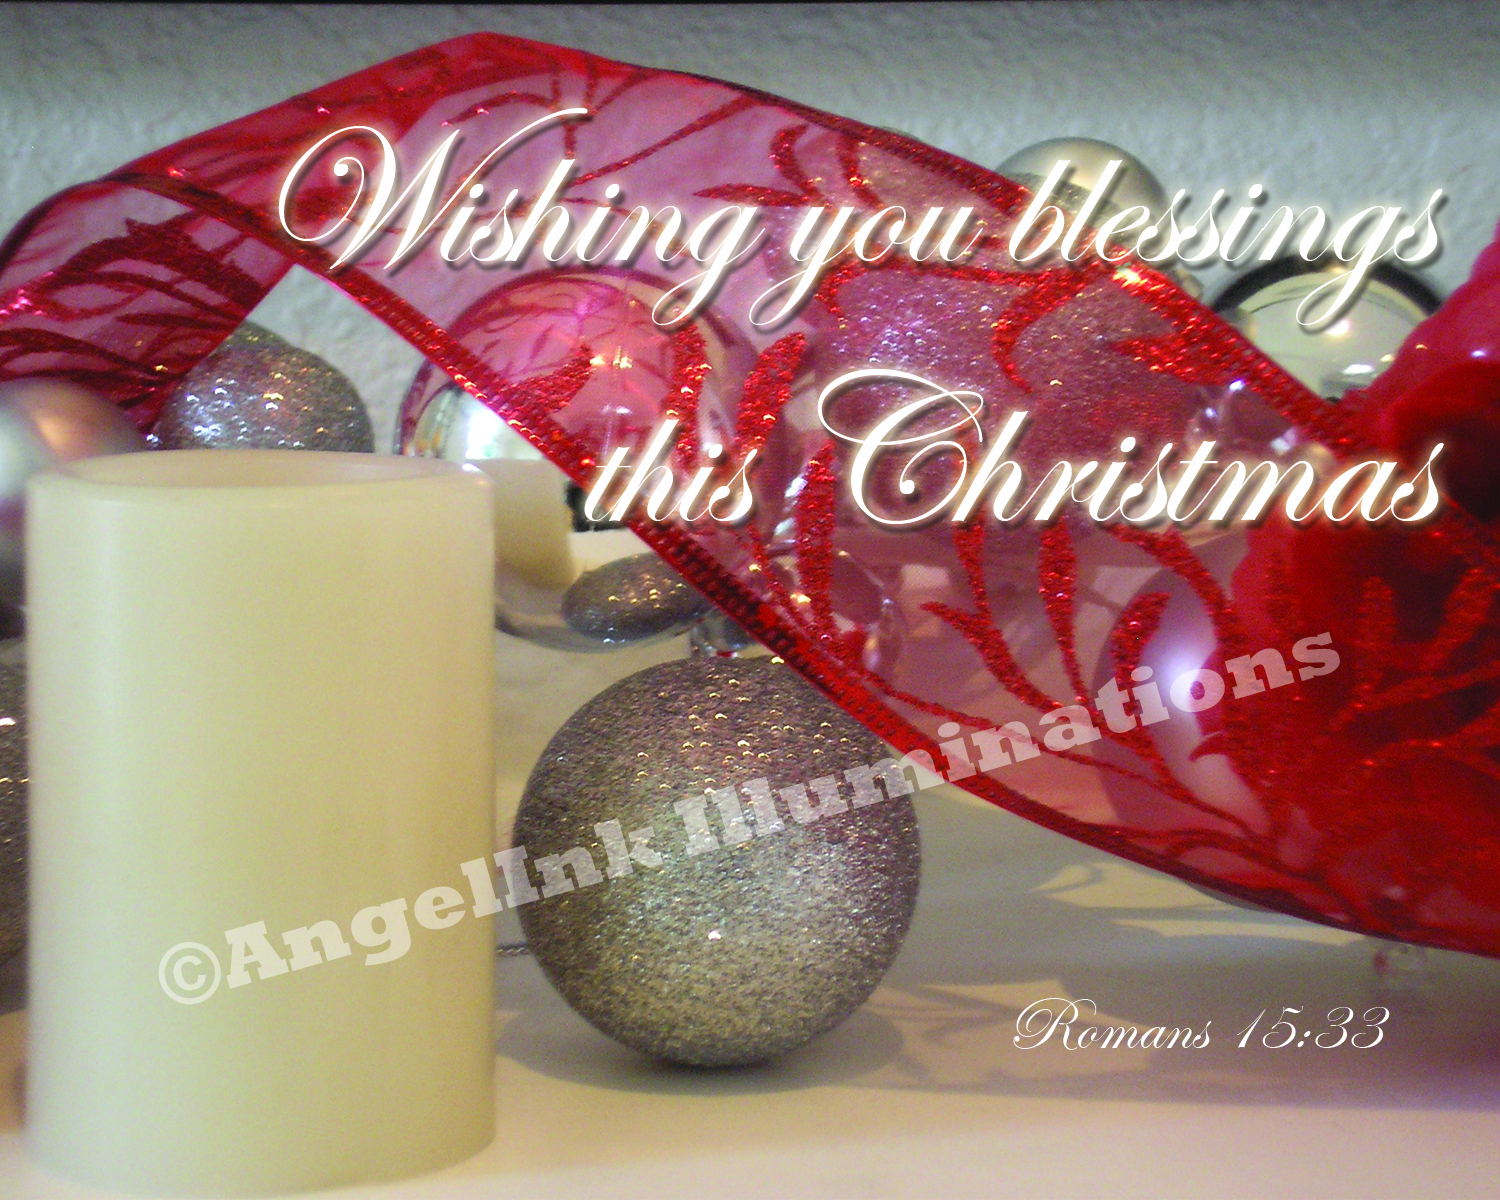 Christmas_20blessings_20store_original